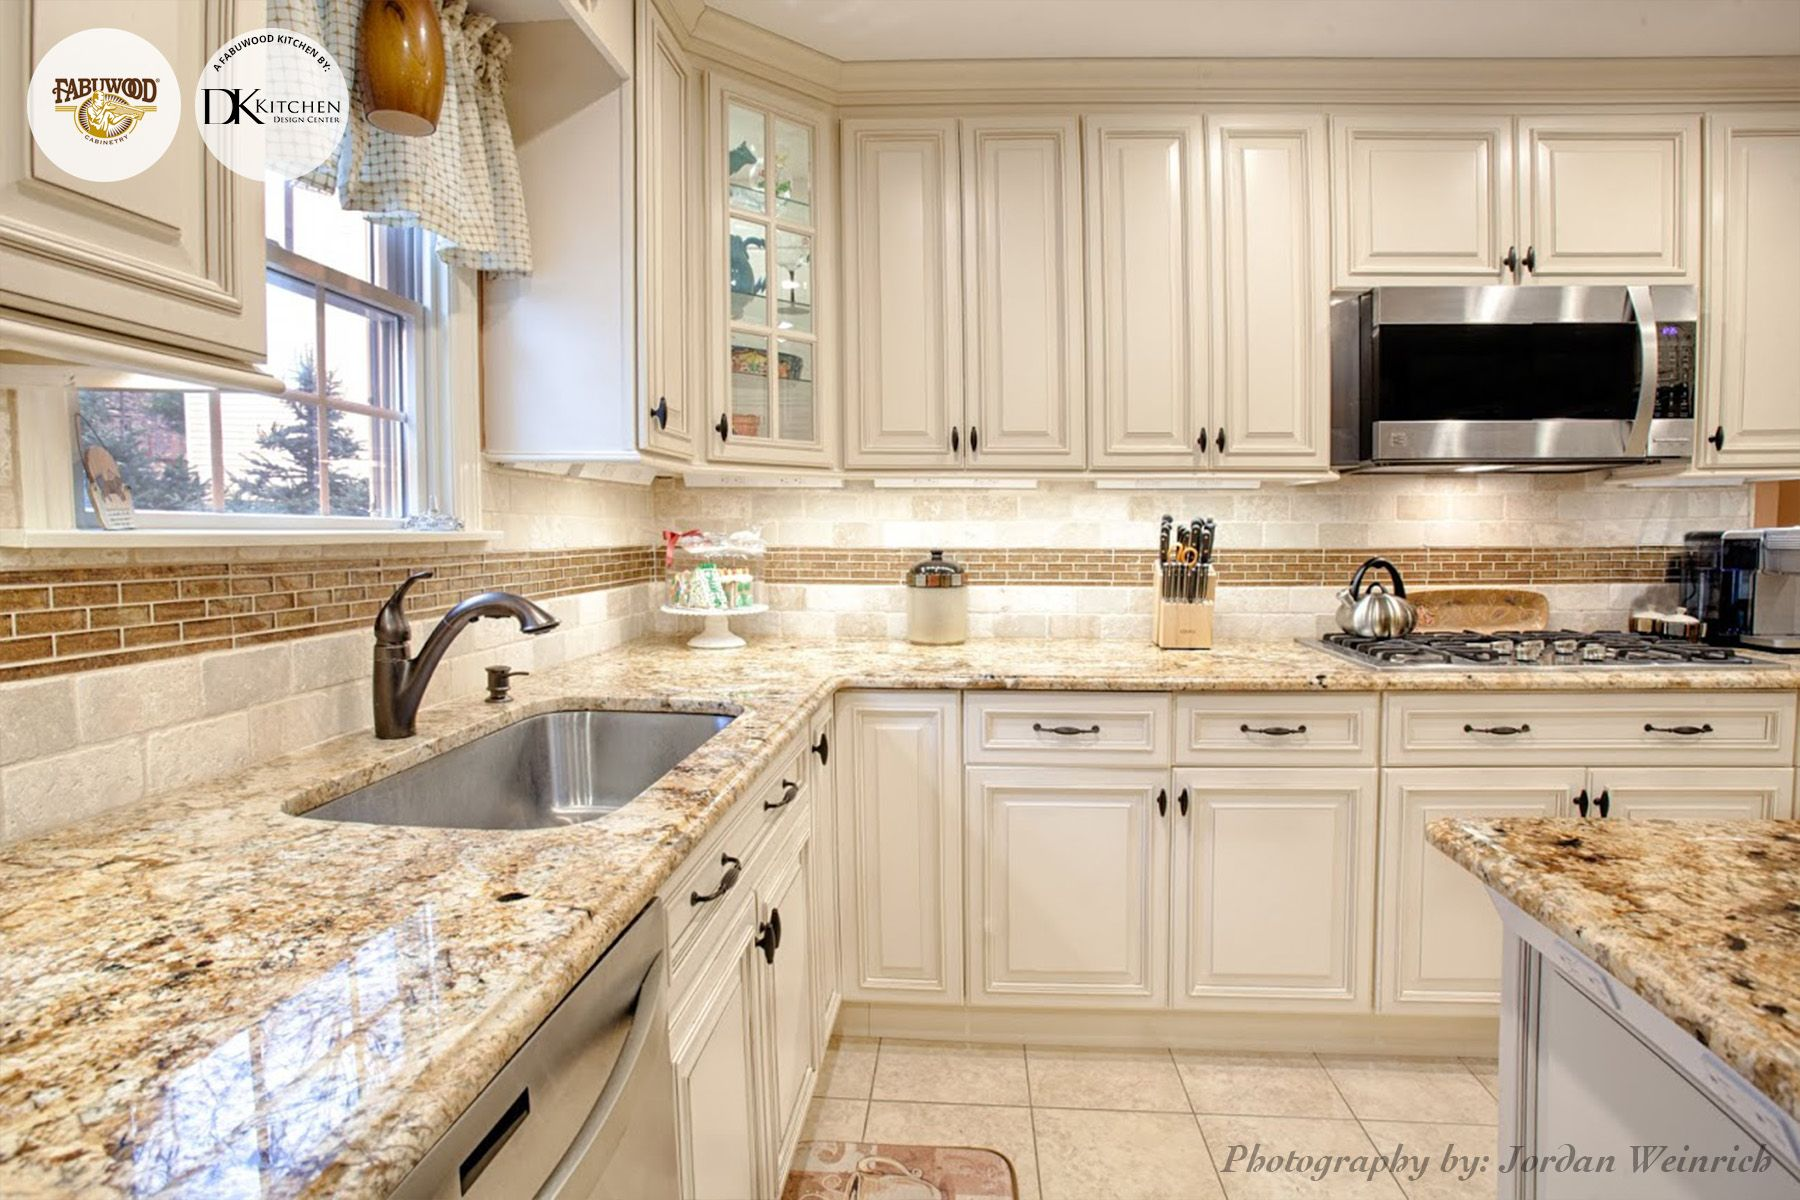 Another stunning view of the Wellington kitchen in Ivory glaze completed by  DK Kitchen Design CenterAnother stunning view of the Wellington kitchen in Ivory glaze  . Ivory Kitchens Design Ideas. Home Design Ideas